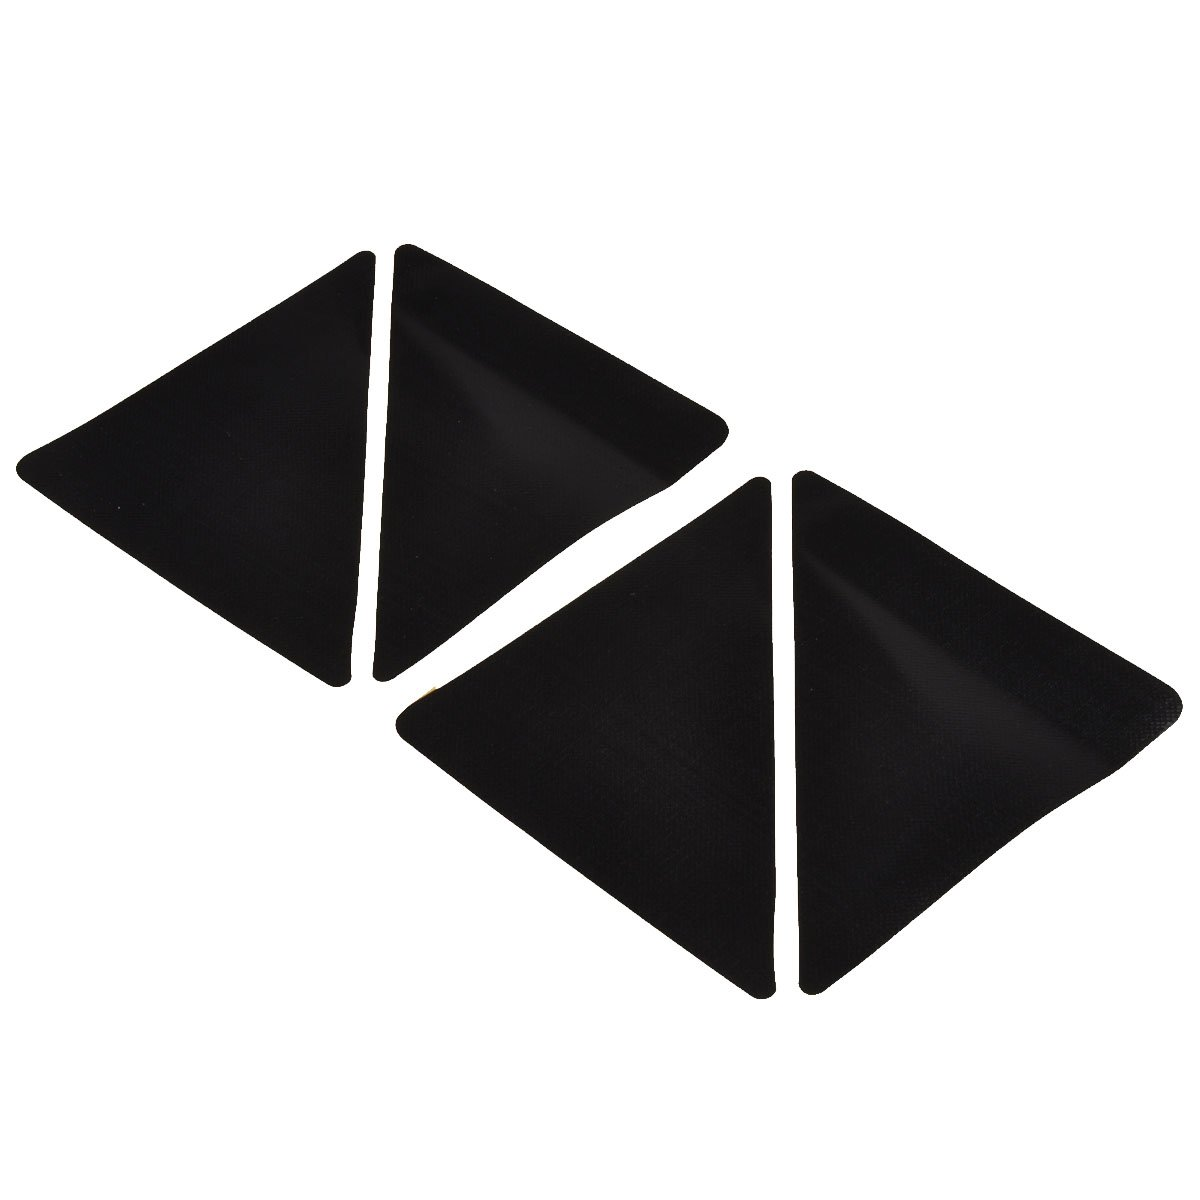 Foxnovo 15*7.5cm Reusable Triangle-shaped Anti-skid Rubber Floor Carpet Mat Rug Gripper Stopper Tape Sticker - 4 pcs/set (Black)